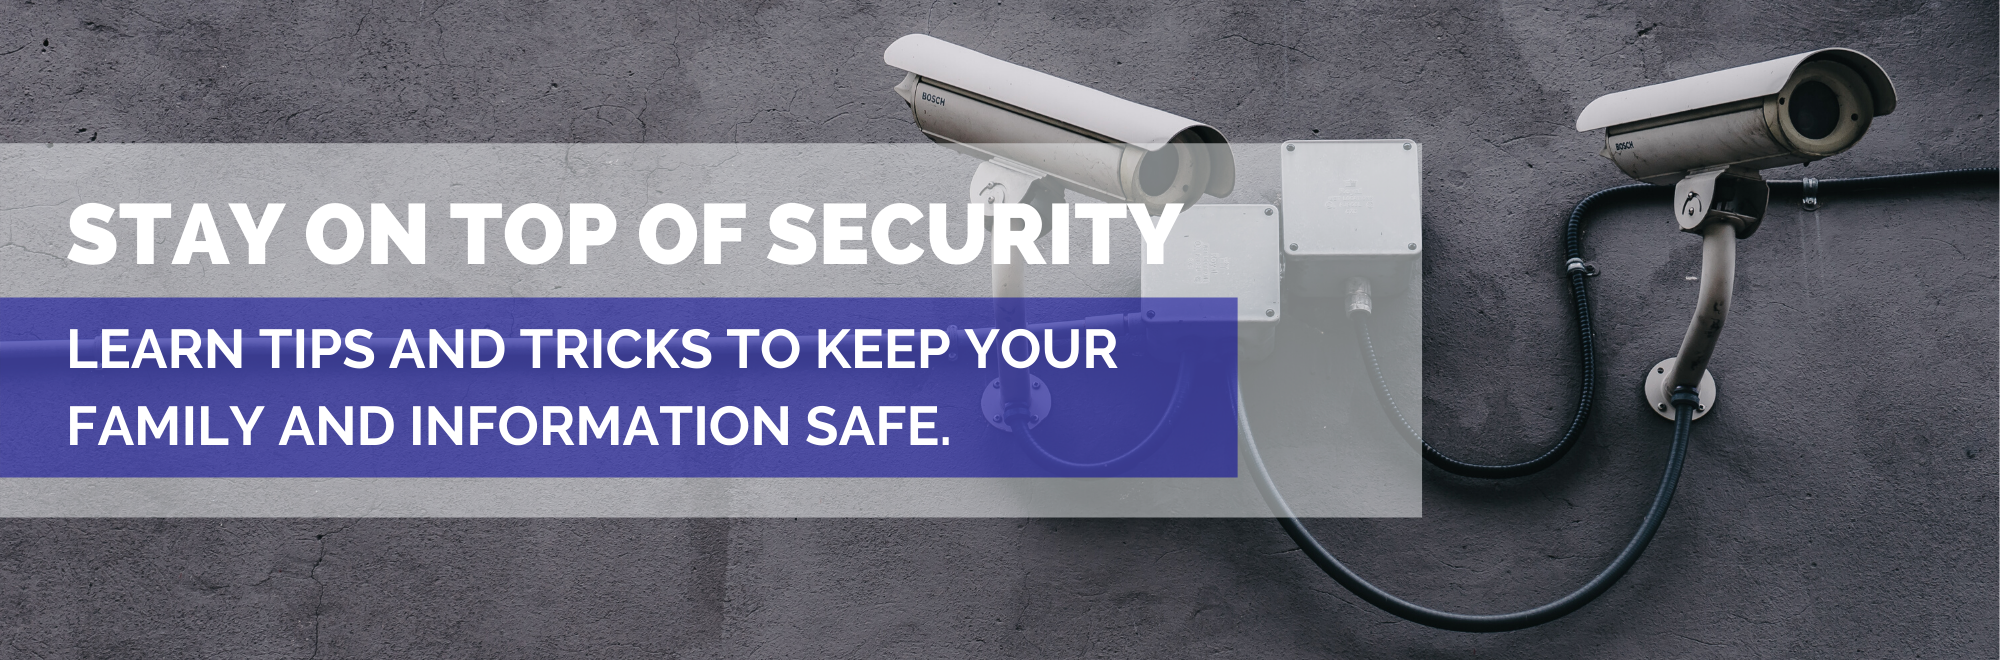 Stay on top of security. Learn tips and tricks to keep your family and information safe.